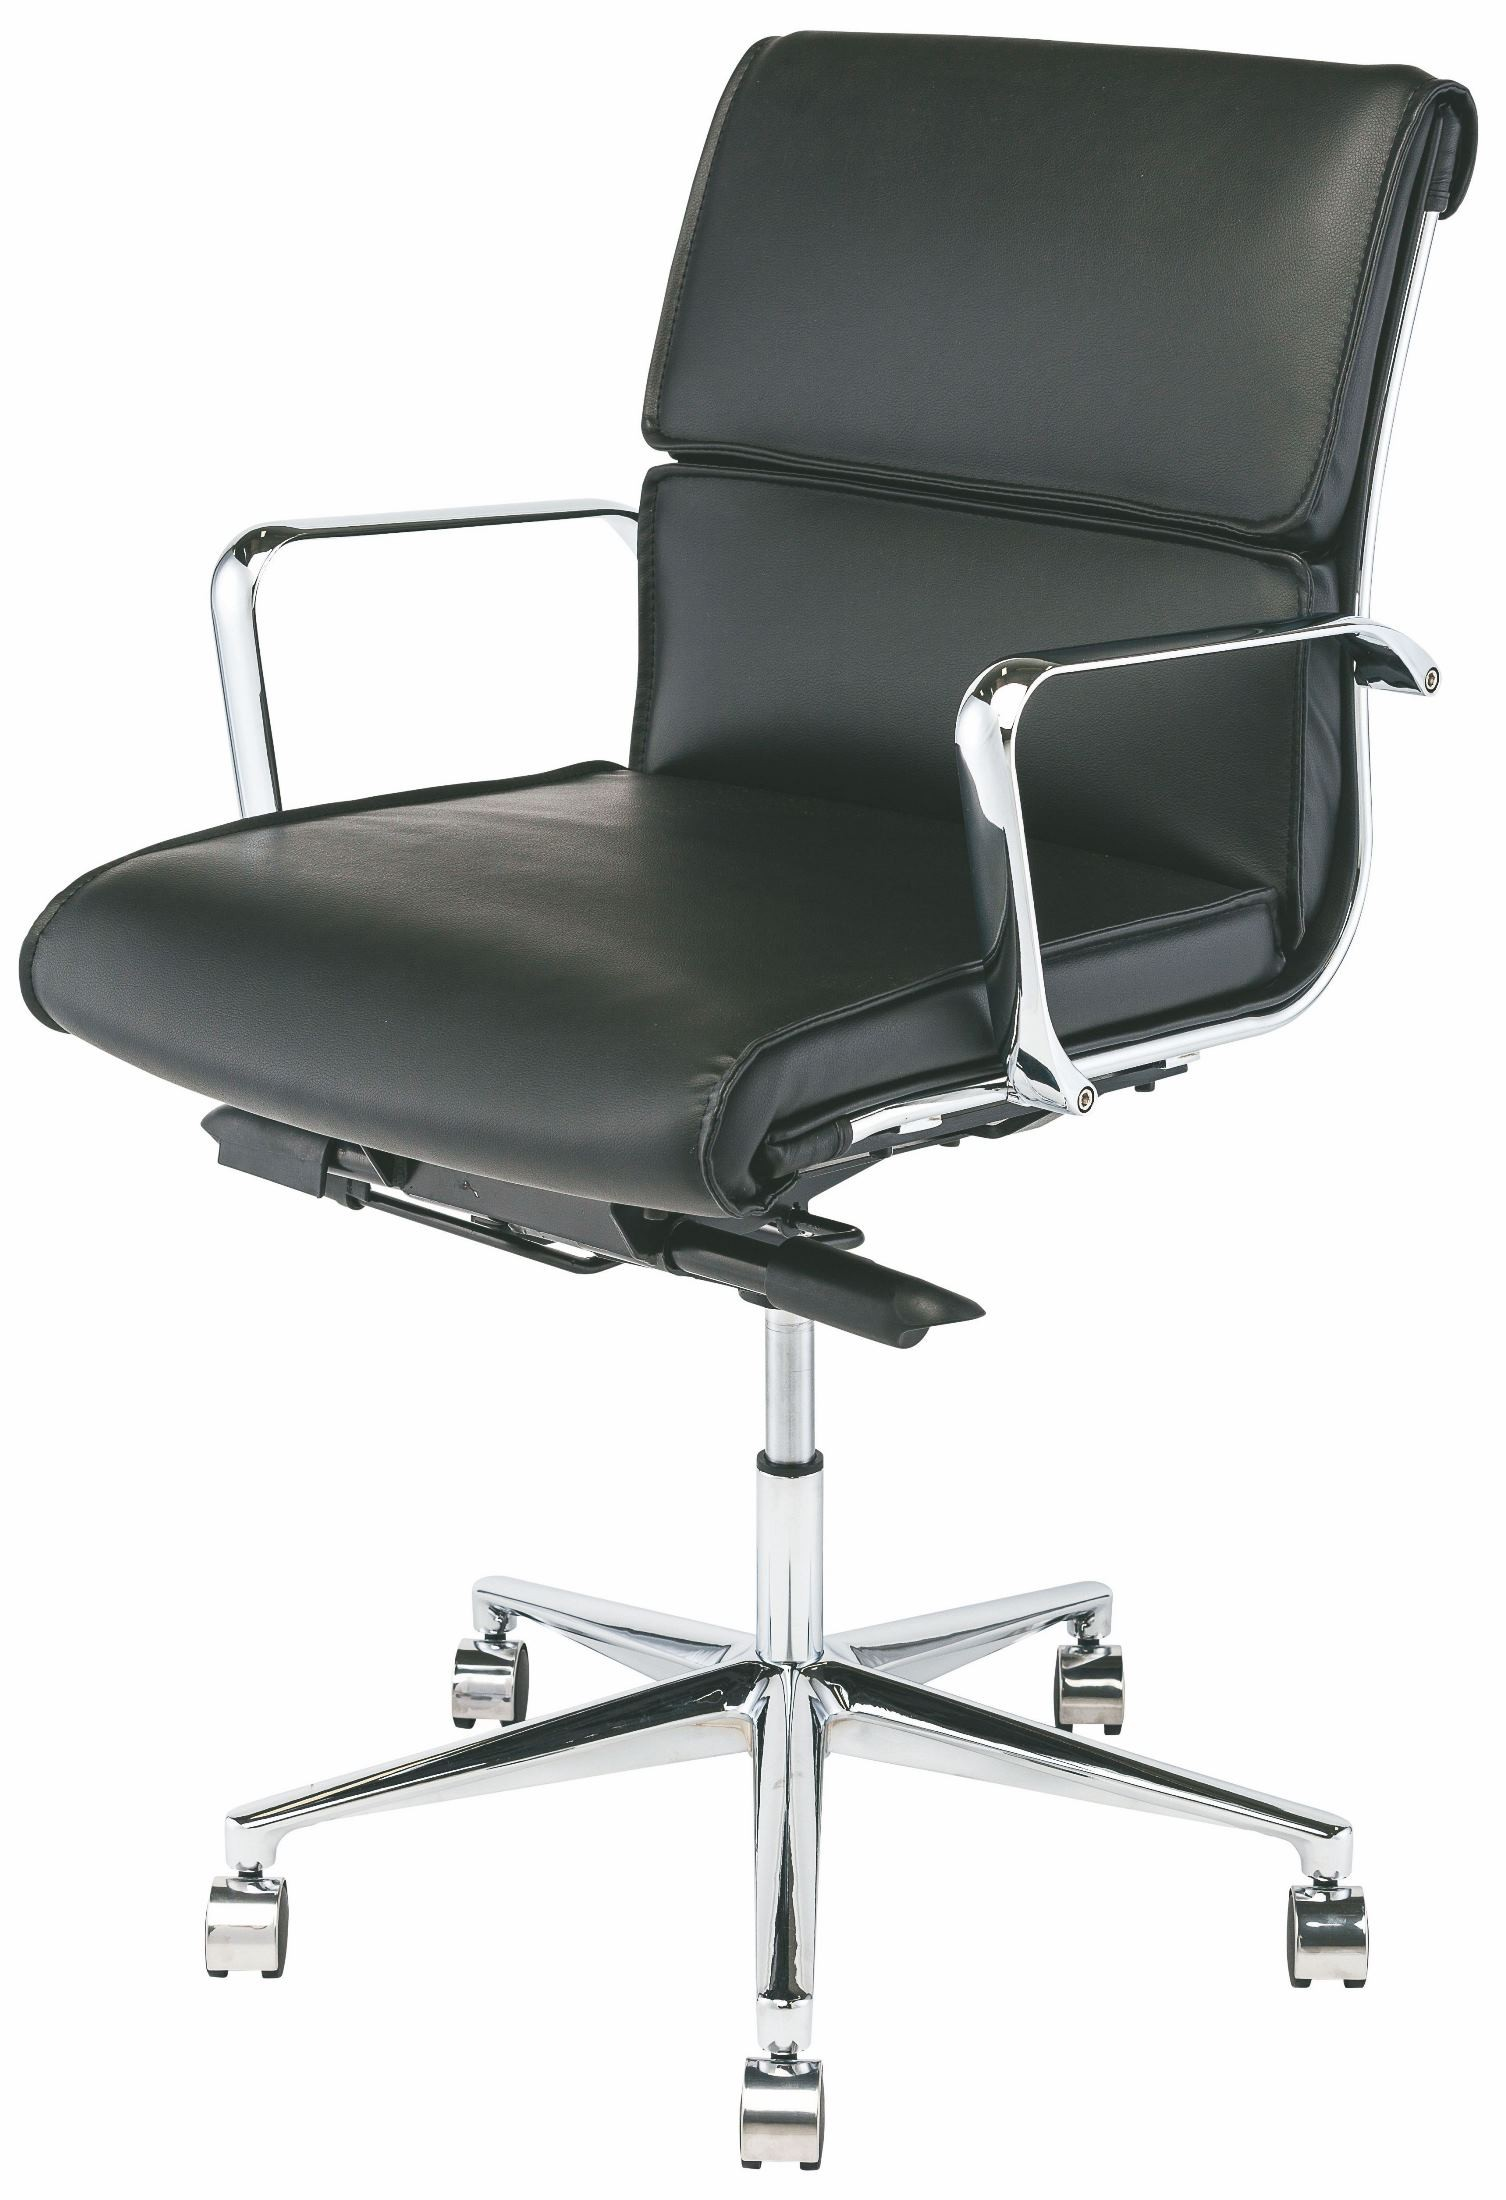 Lucia Black and Silver Metal Low Back Office Chair from